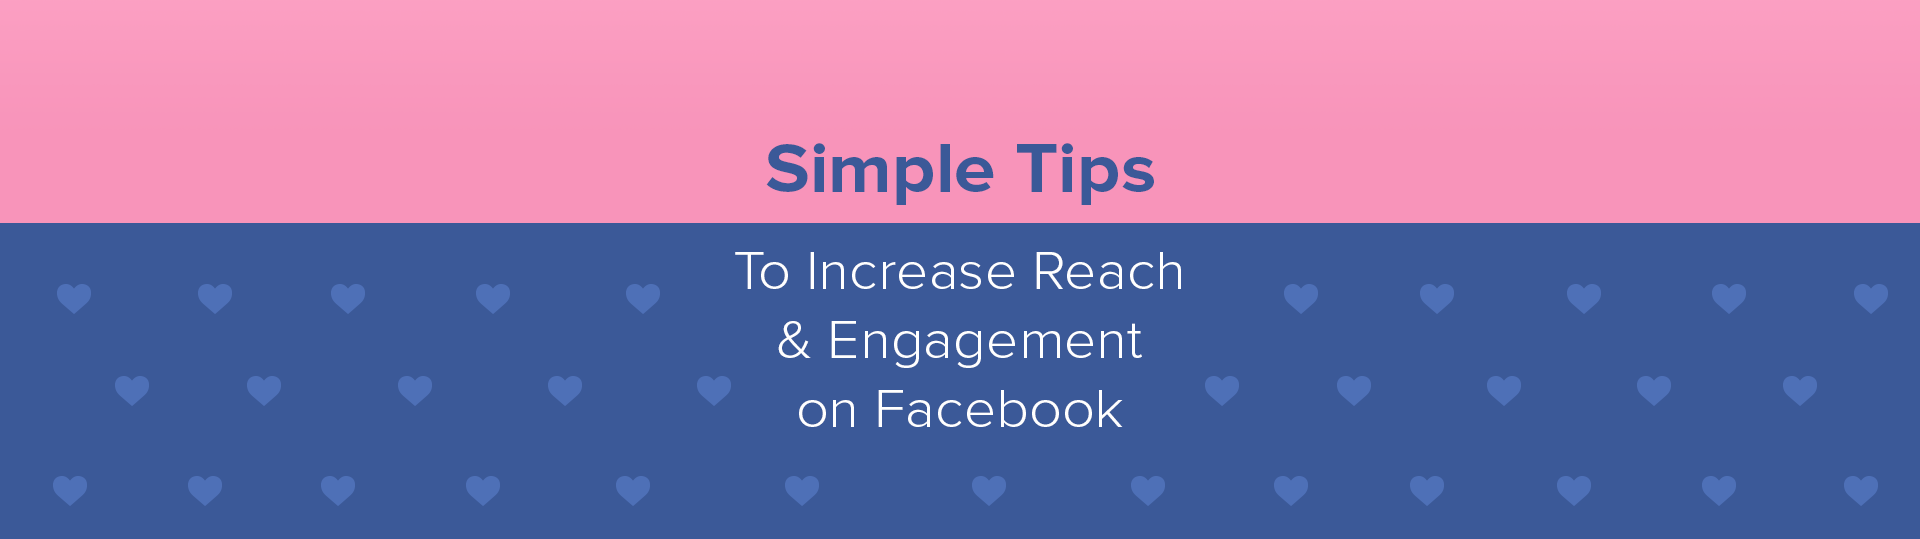 "Blog Header ""Simple Tips To Increase Reach & Engagement on Facebook"""